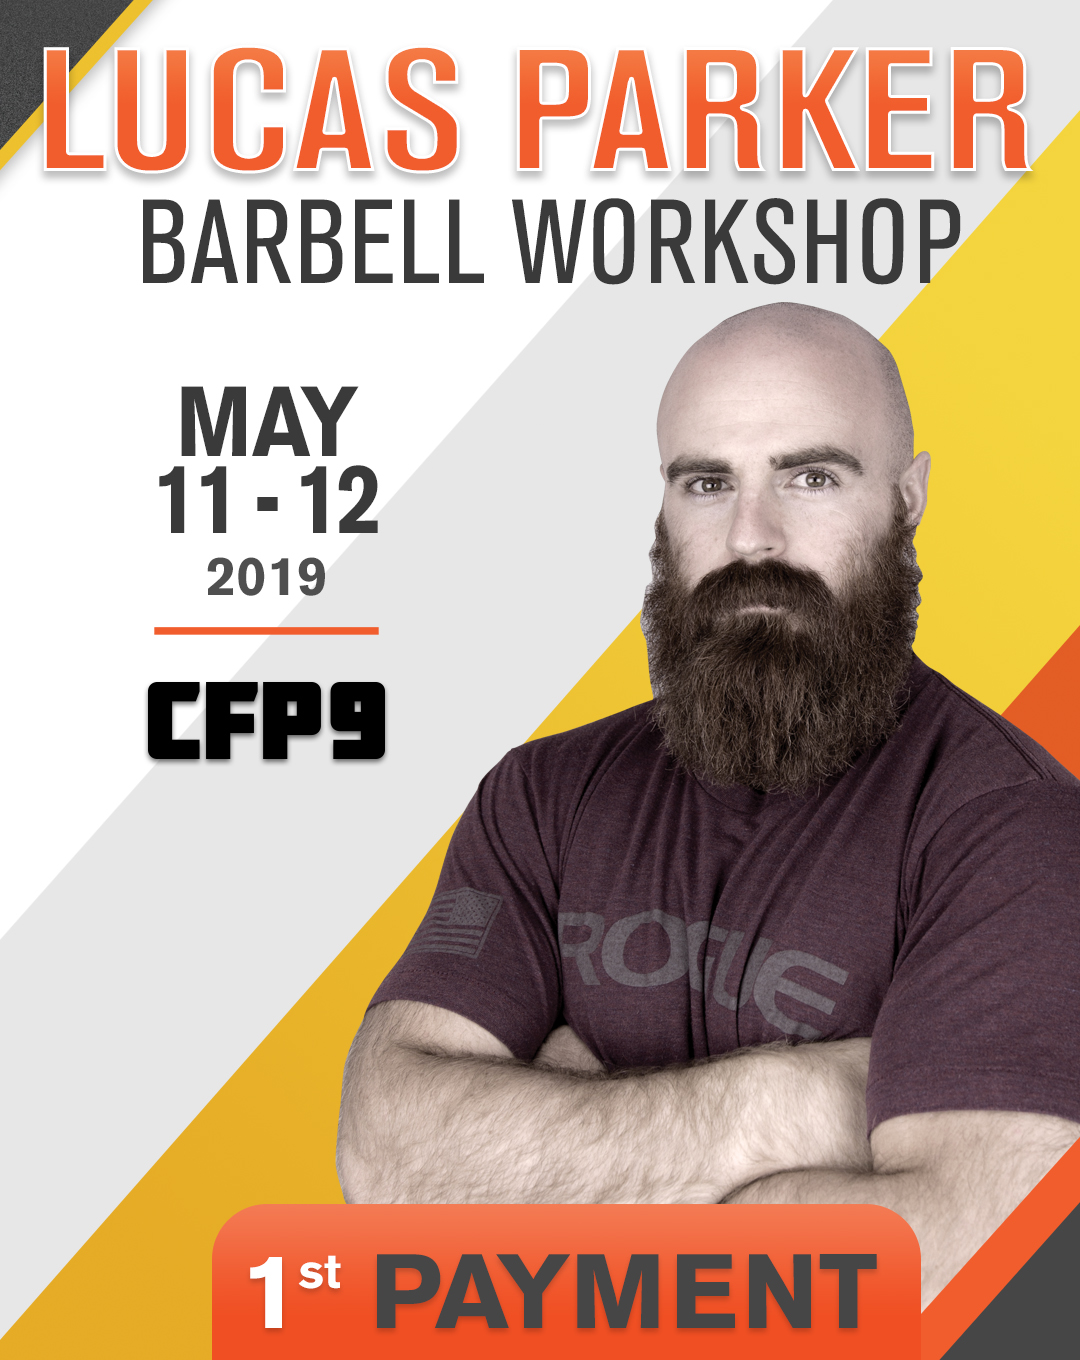 Lucas Parker Barbell Workshop - CFP9